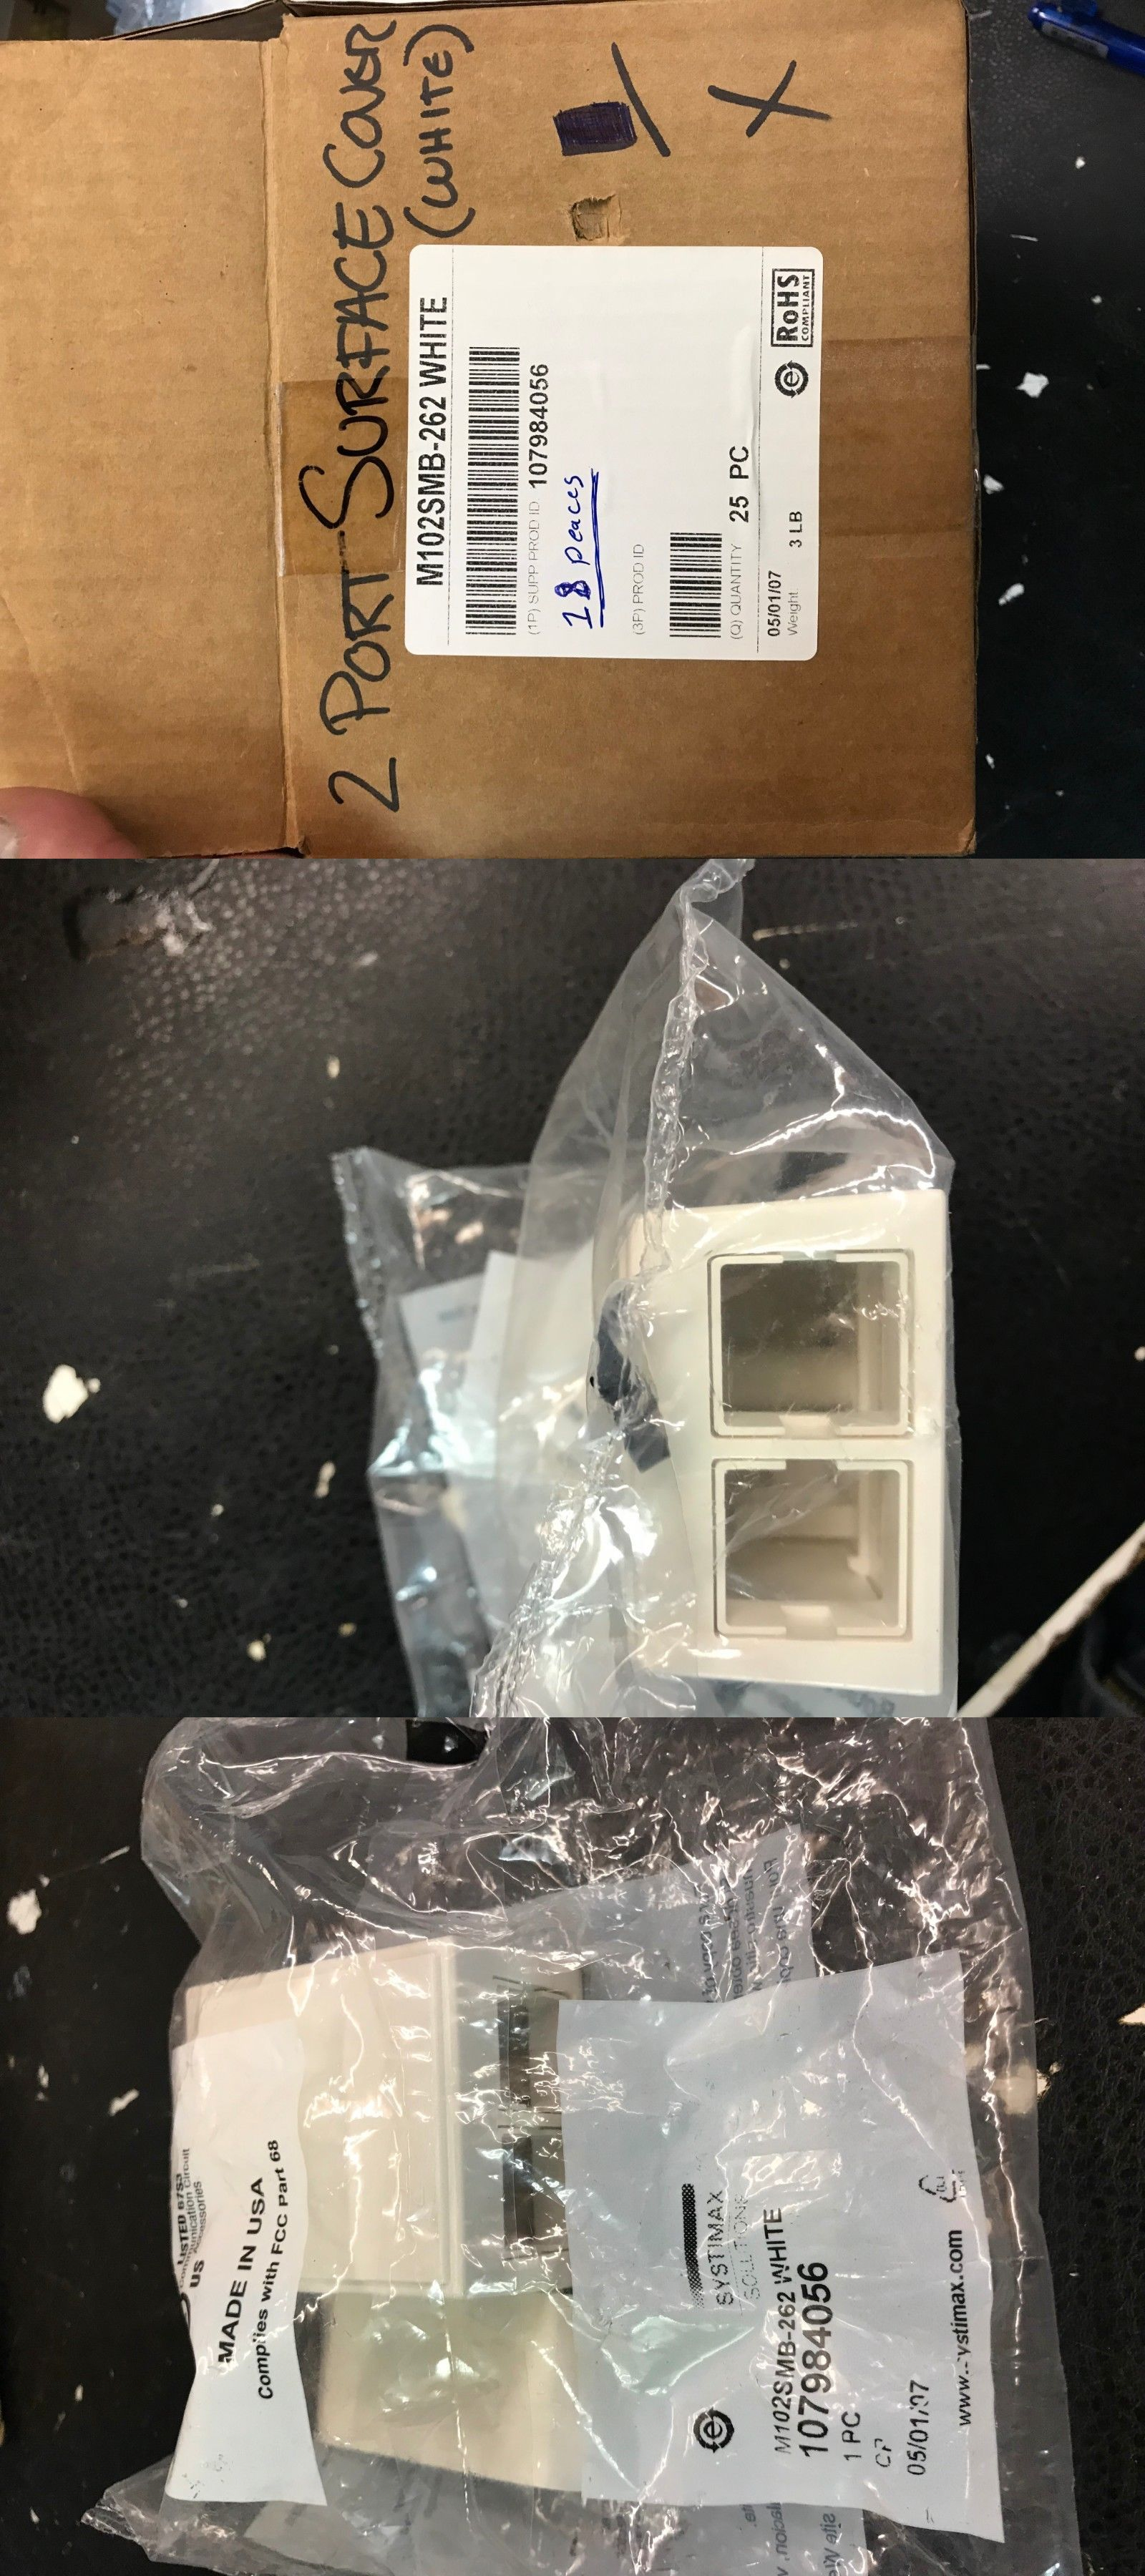 LOT 25 White COAXIAL Wall Plate PERFECT VISION Single Outlet F81 Connector 3 GHZ